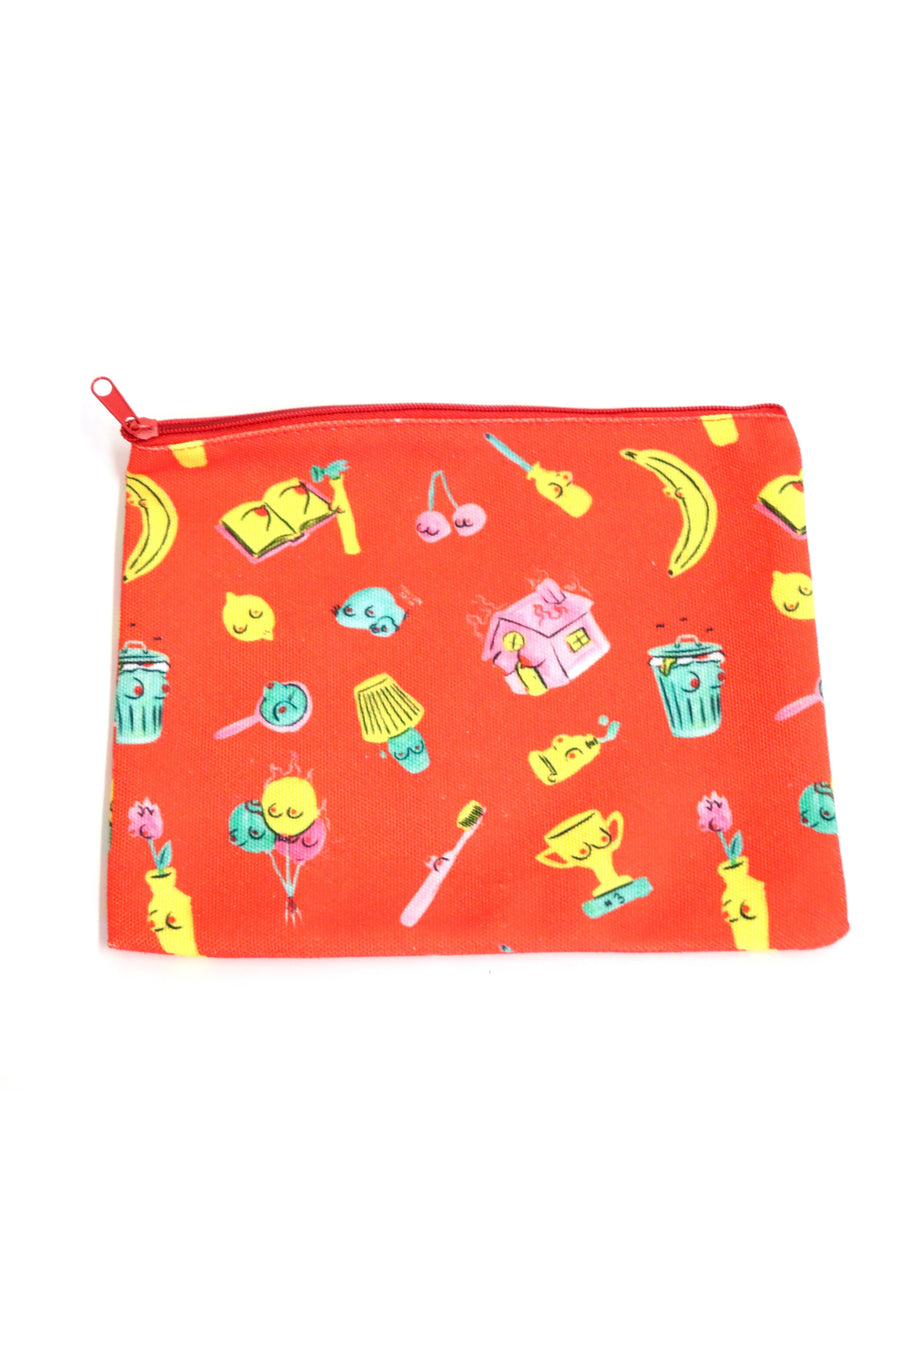 Sexual Object Zipper Pouch